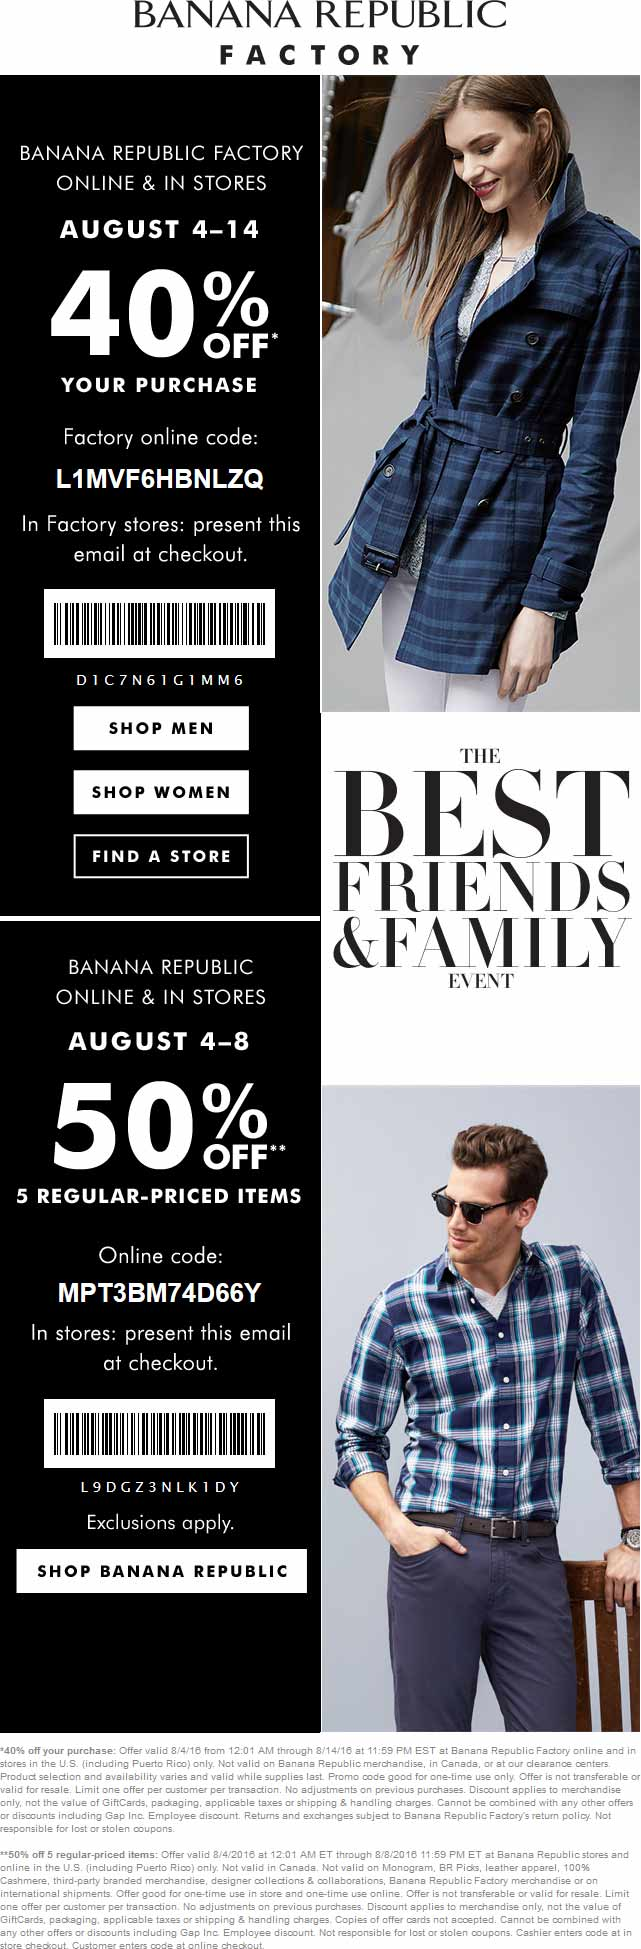 Banana Republic Factory Coupon September 2017 Extra 40-50% off at Banana Republic Factory, or online via promo code L1MVF6HBNLZQ